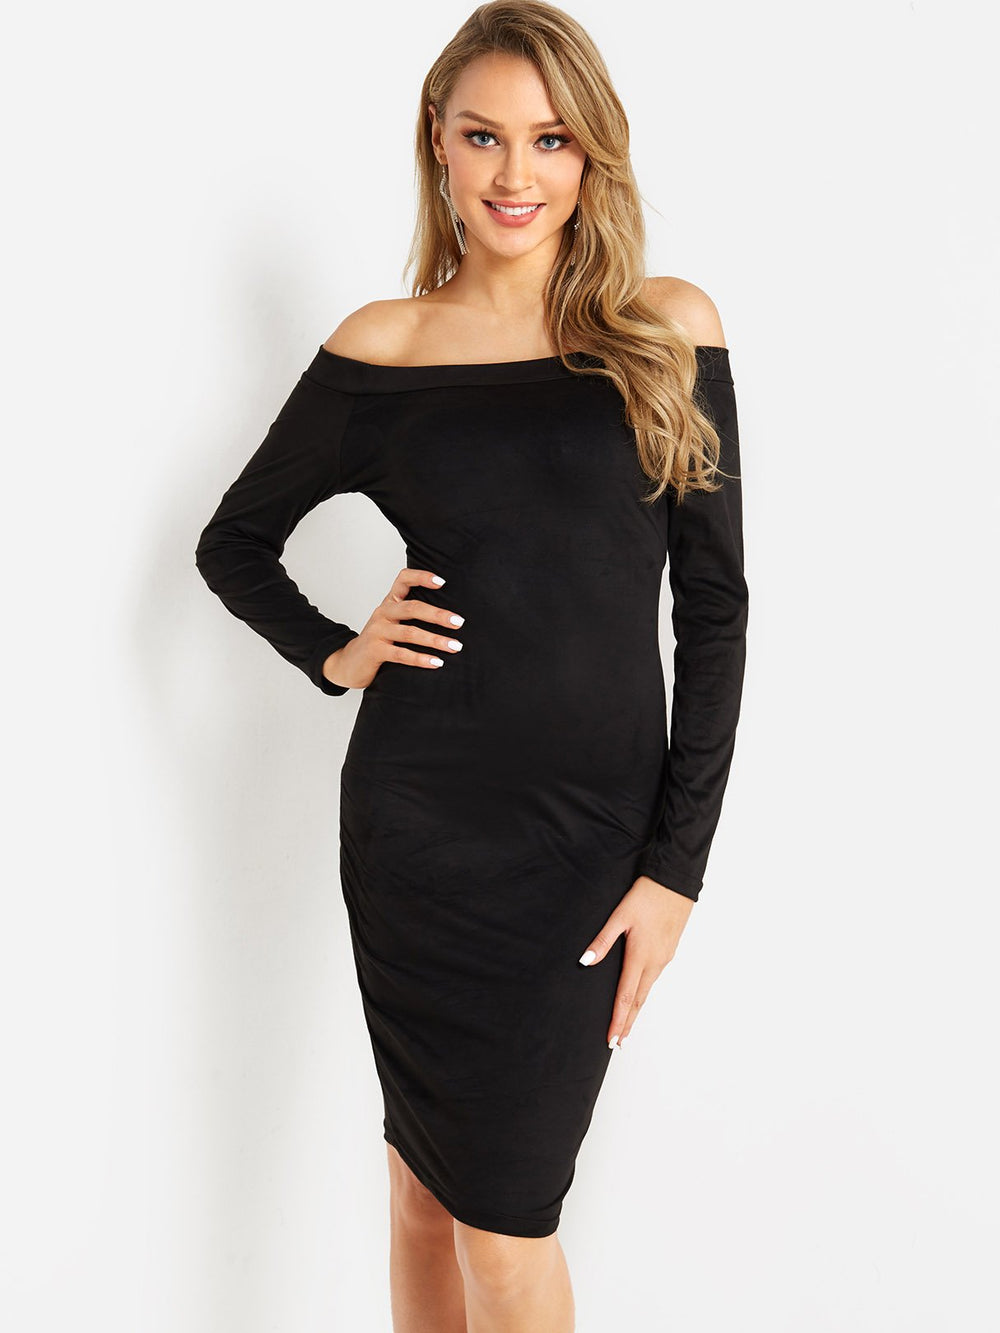 Off The Shoulder Long Sleeve Bodycon Hem Black Dresses